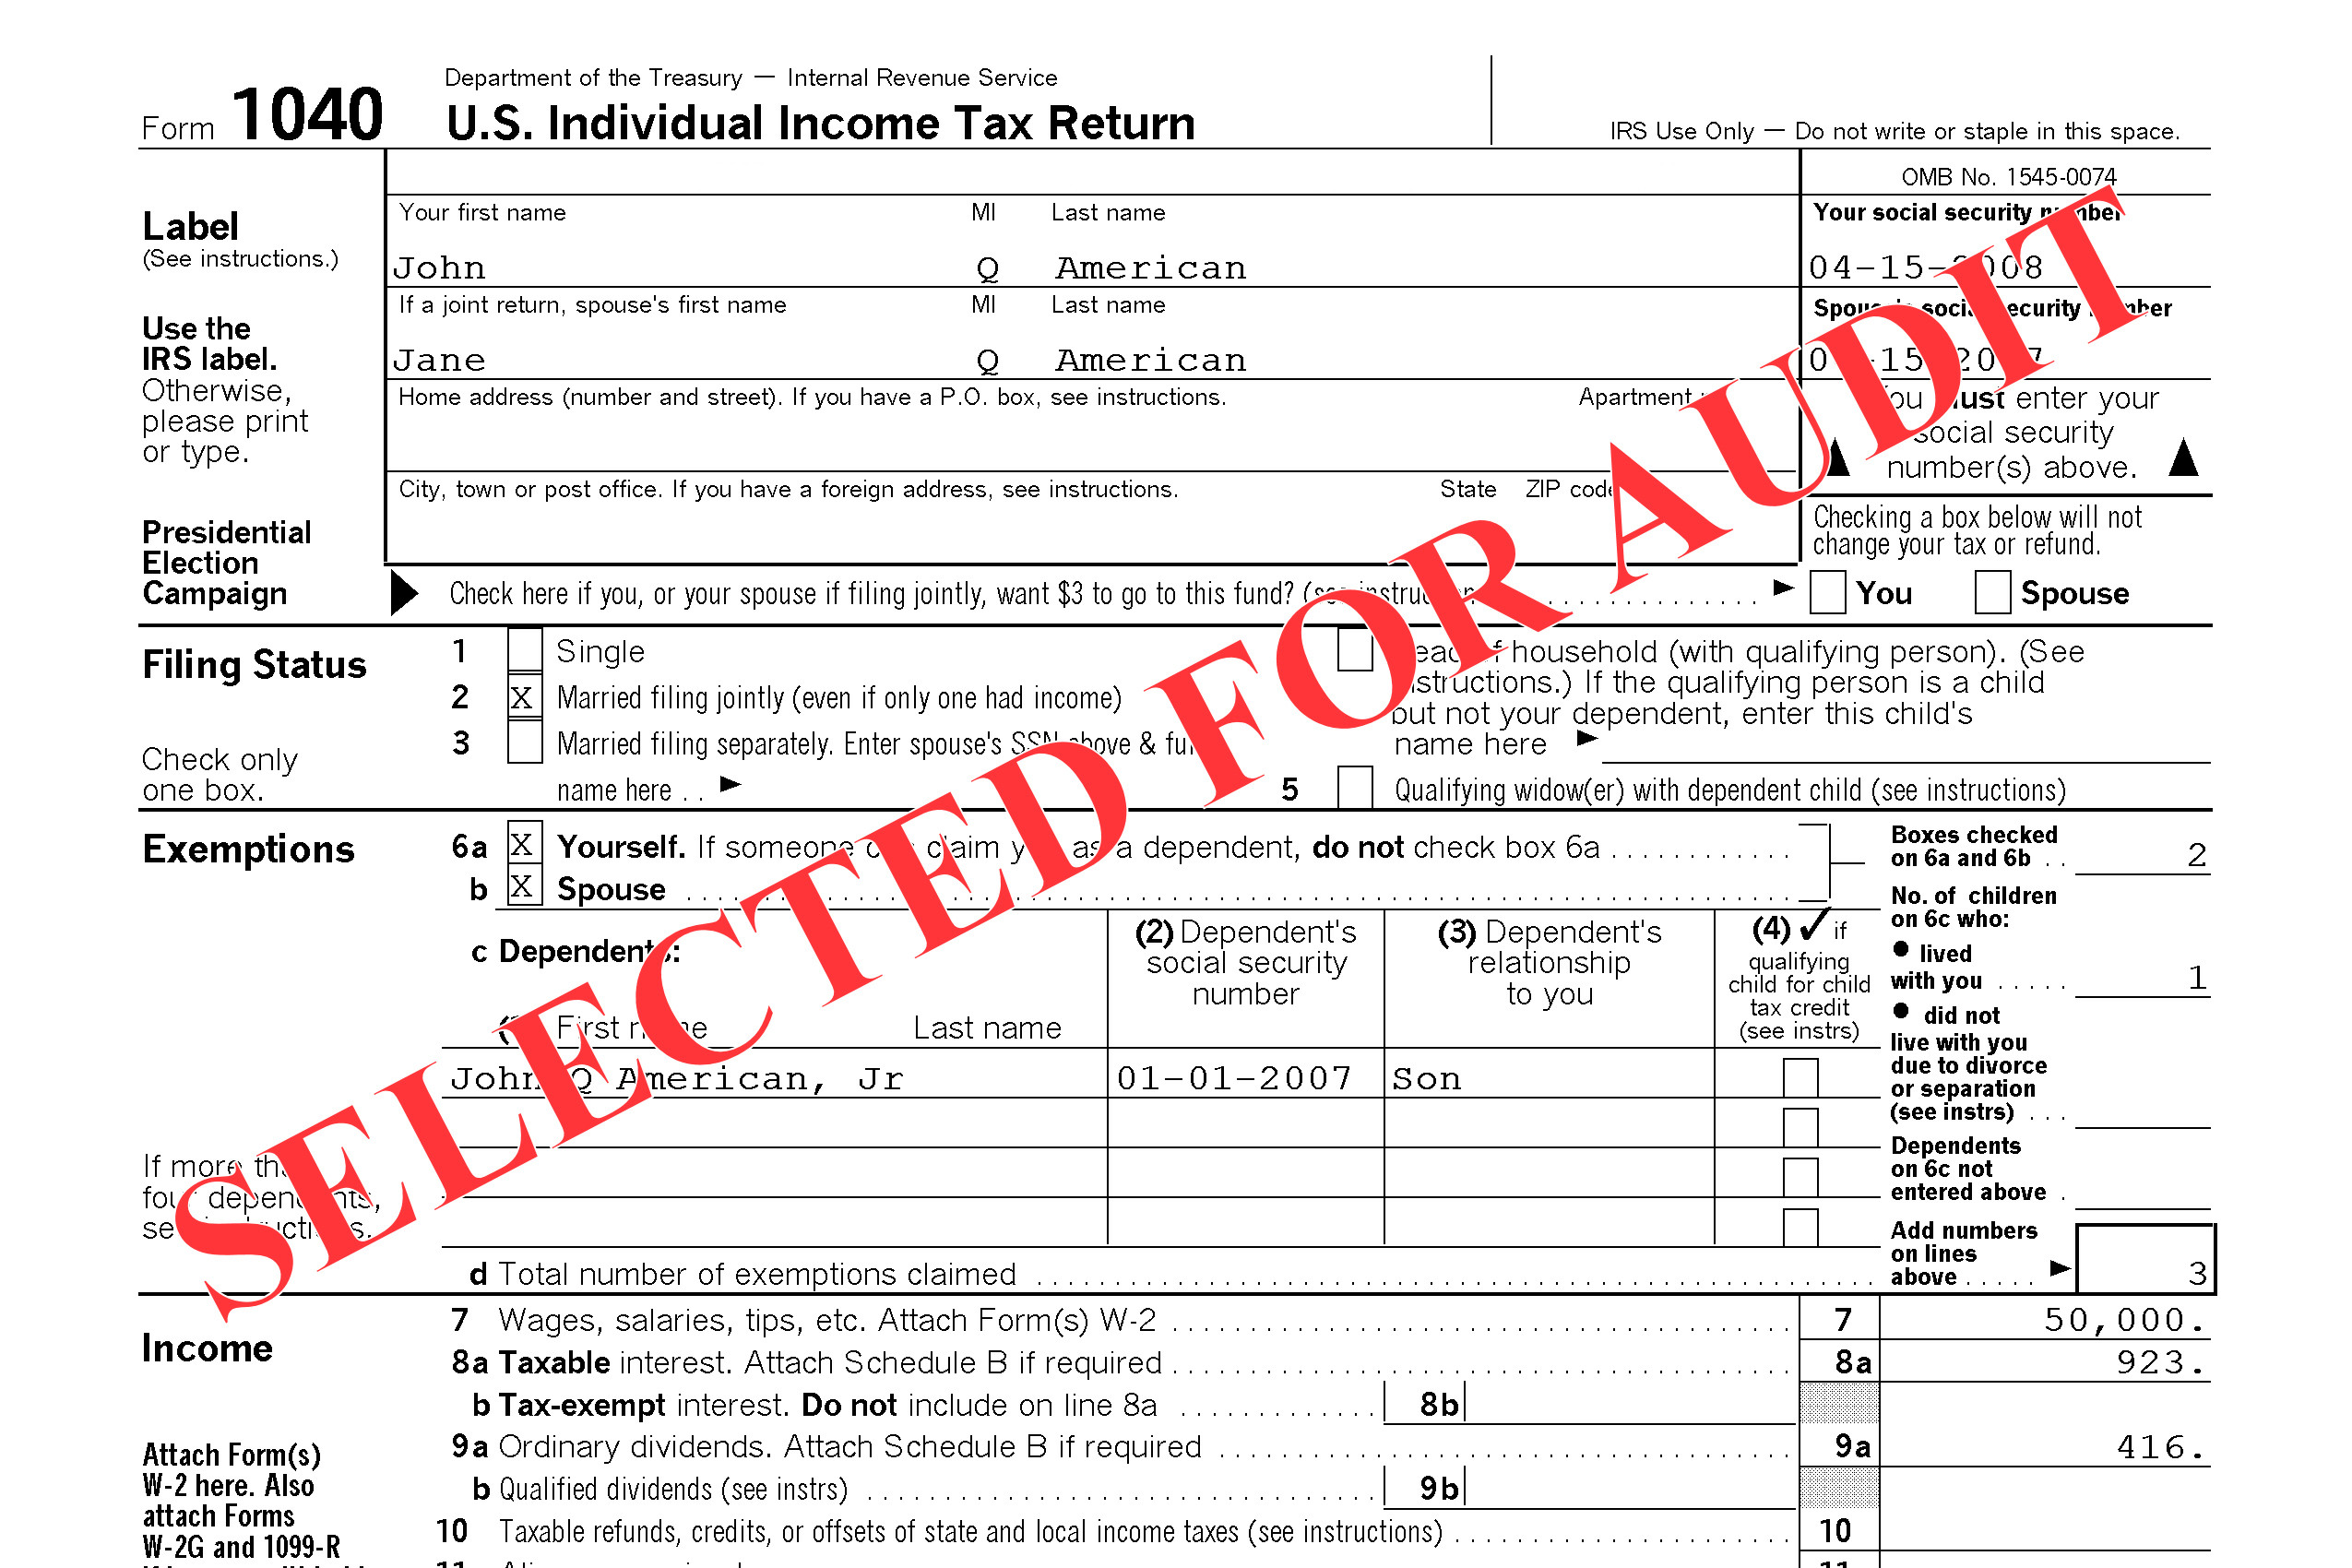 Please post when you receive your paper tax stimulus/rebate check.?